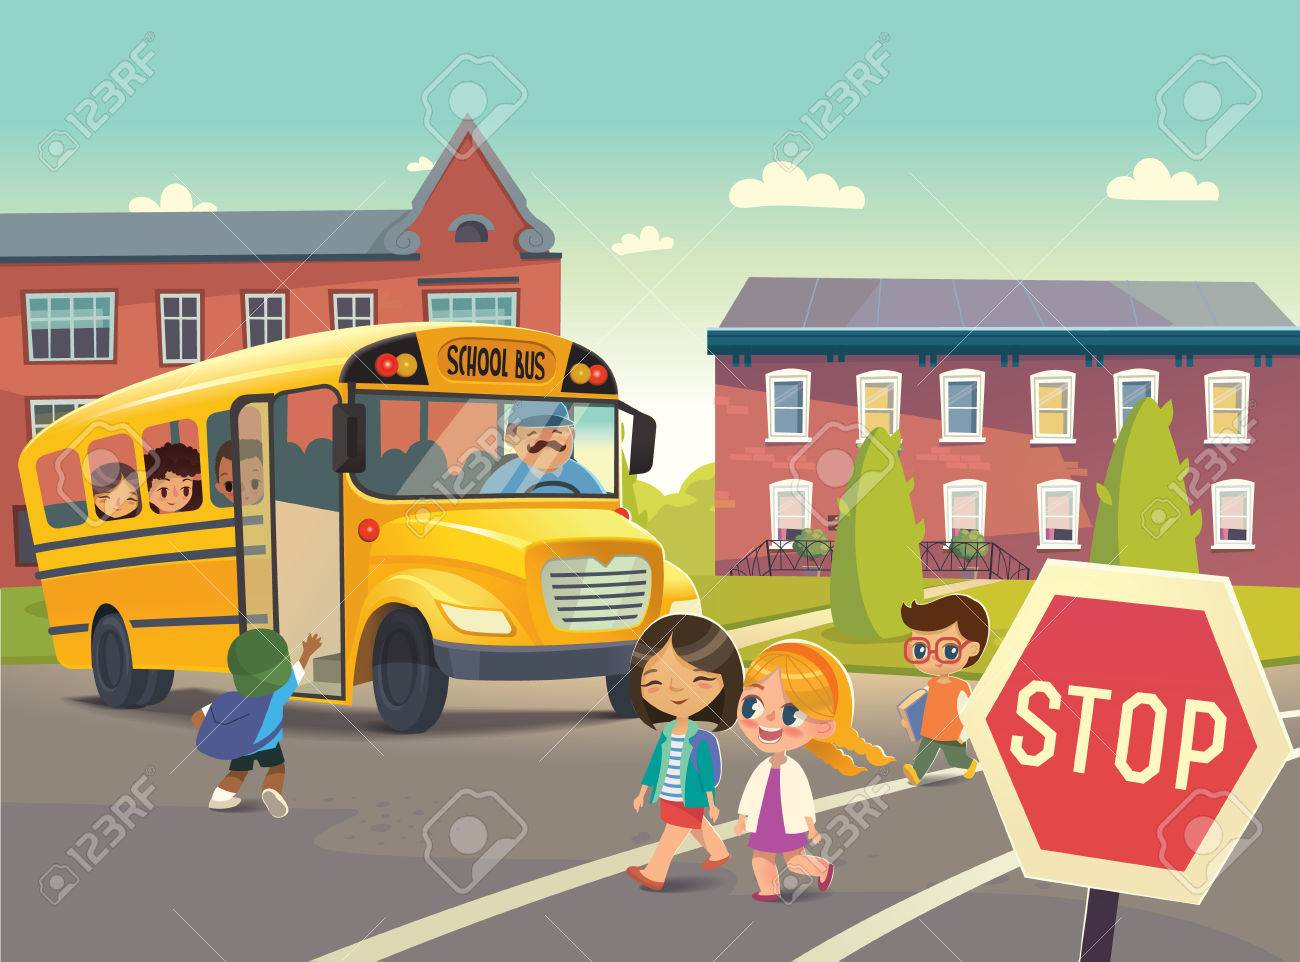 Back To School Safety. Illustration depicting School bus stop, Child boarding school bus. Passing a school bus. Kids crossing the road. Vector illustration. - 63012257